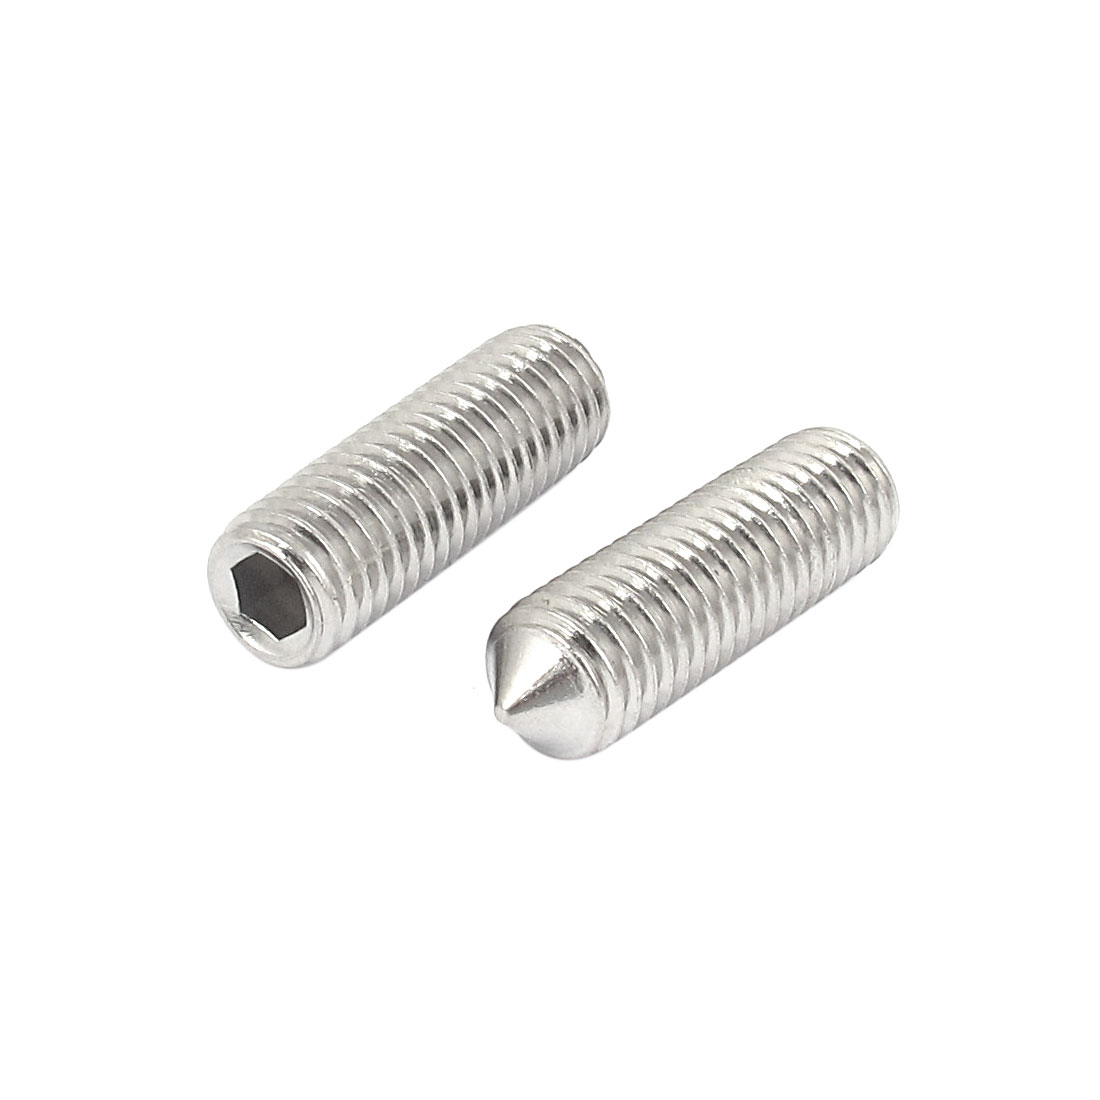 M12x40mm 1.75mm Pitch Stainless Steel Cone Point Hexagon Socket Grub Screws 2pcs